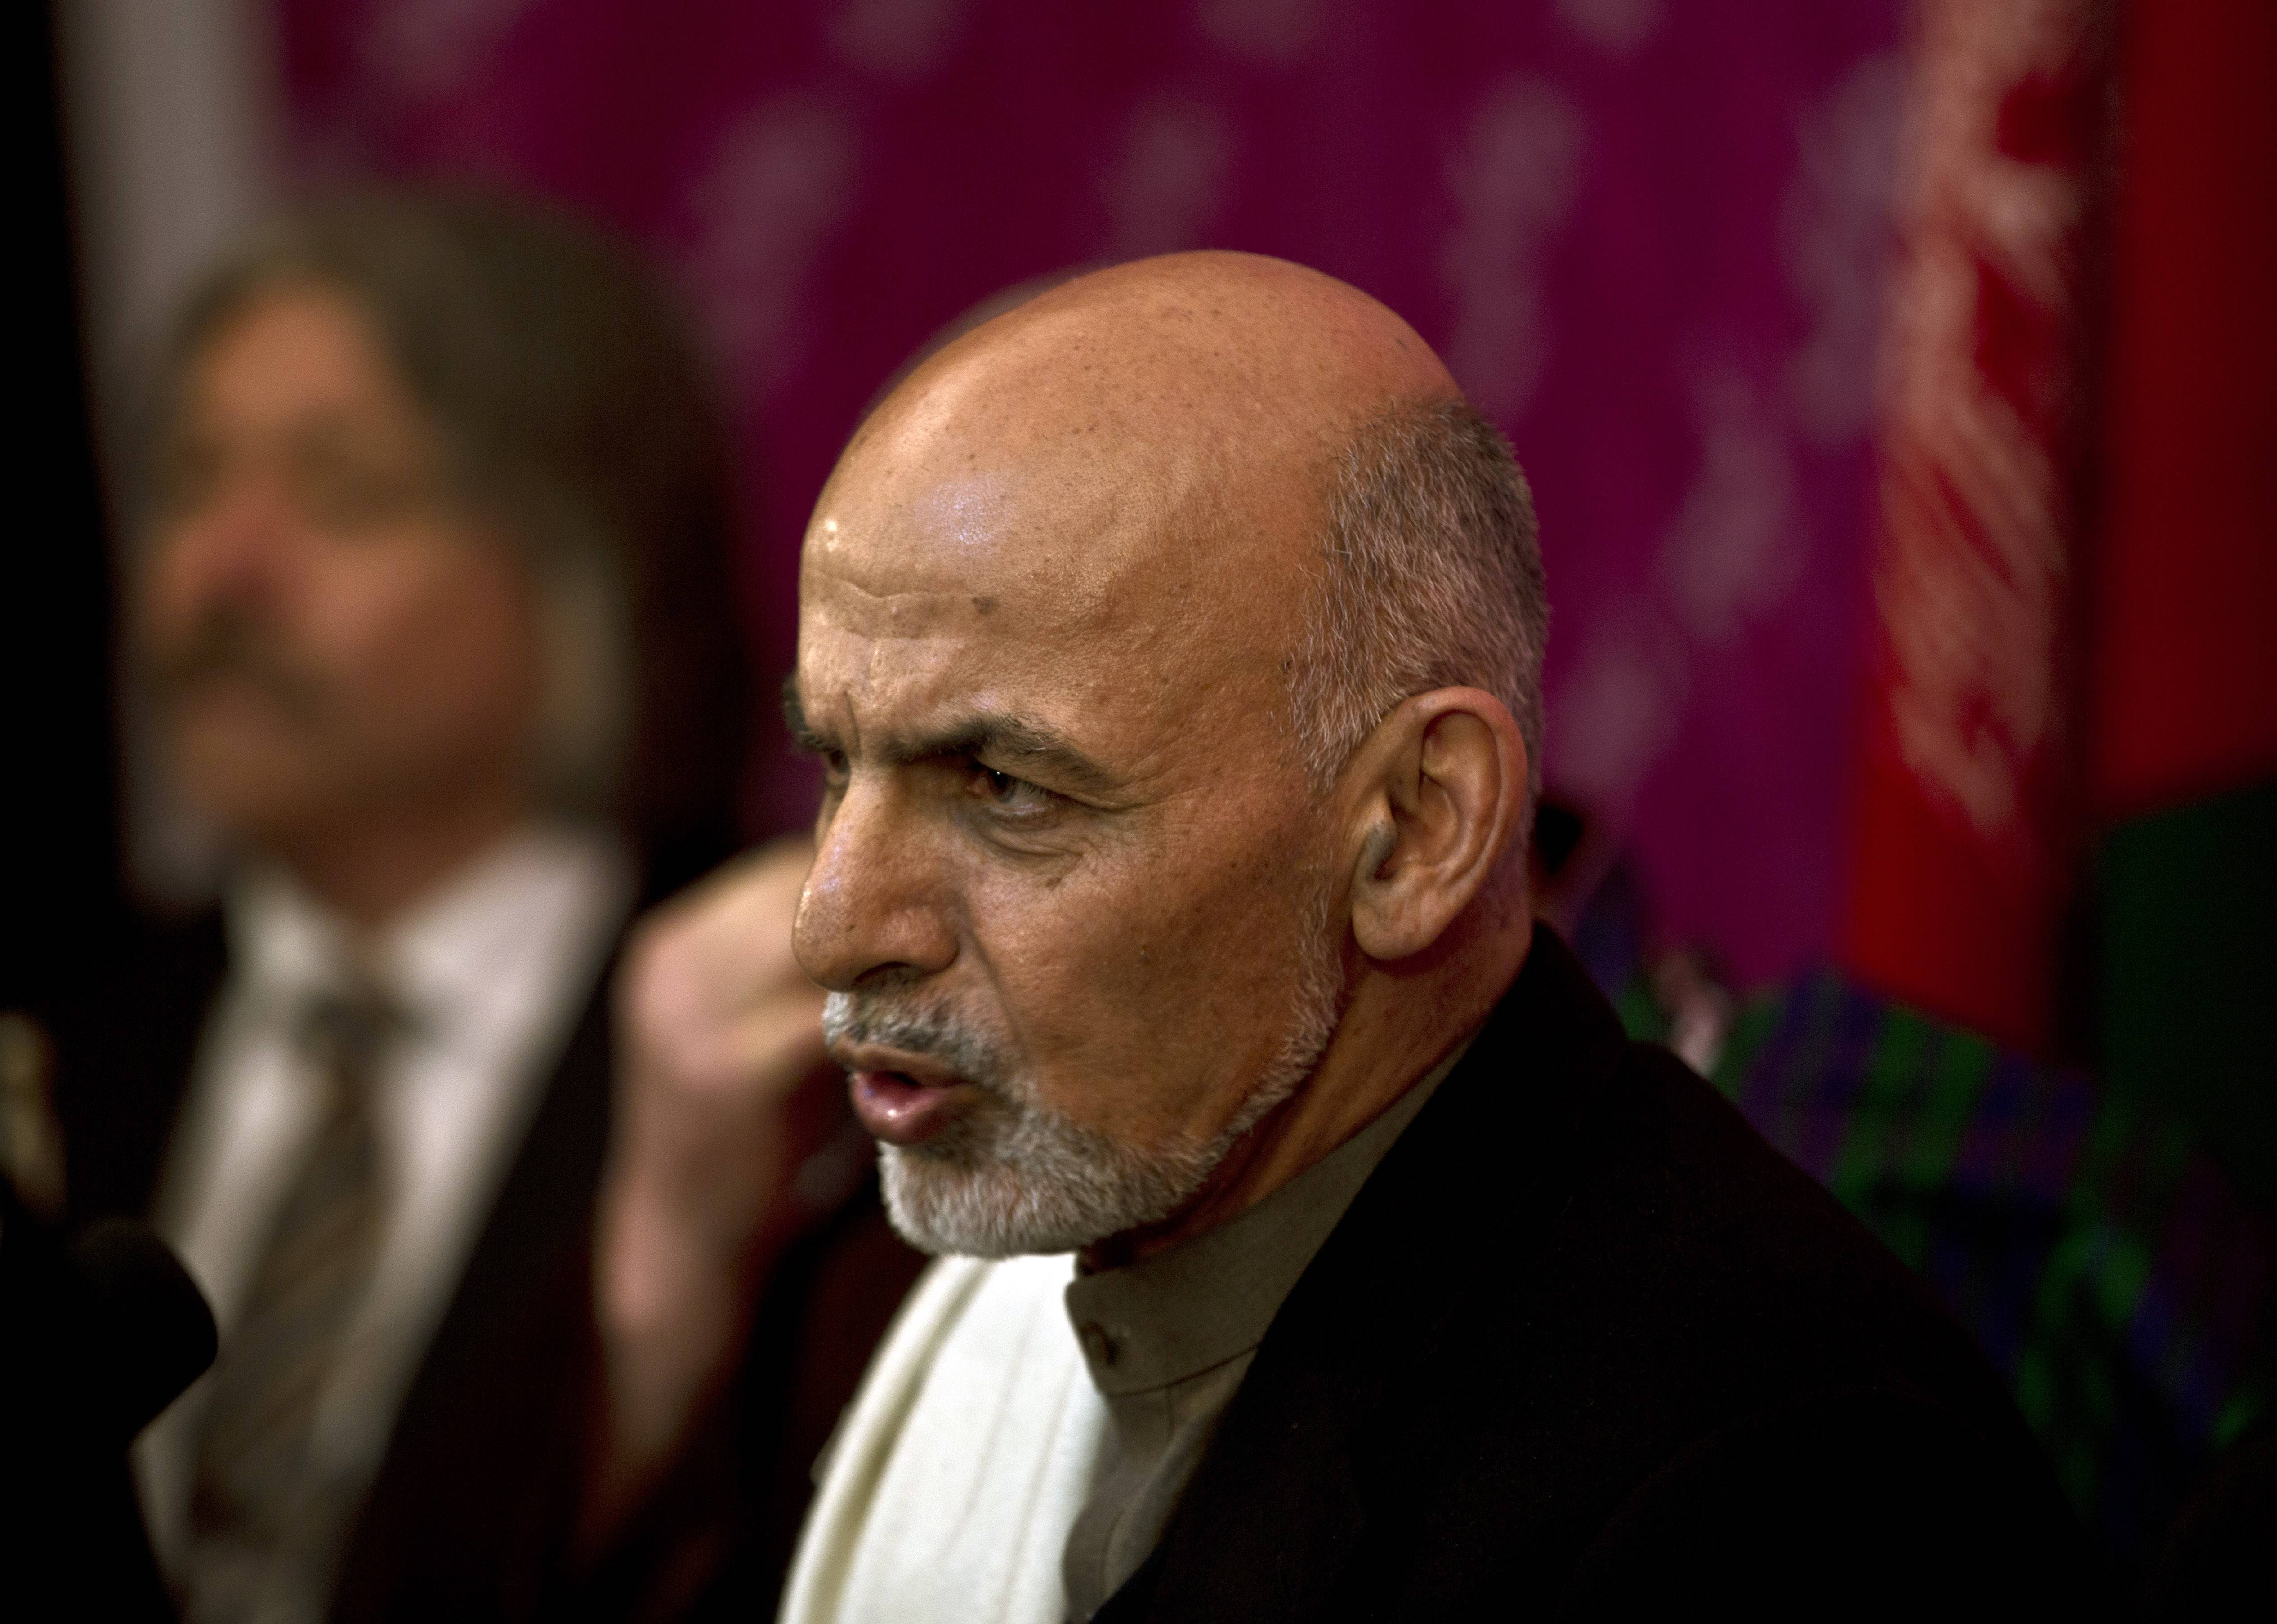 Afghan presidential candidate Ashraf Ghani Ahmadzai, speaks during a news conference, in Kabul, Afghanistan, Saturday.